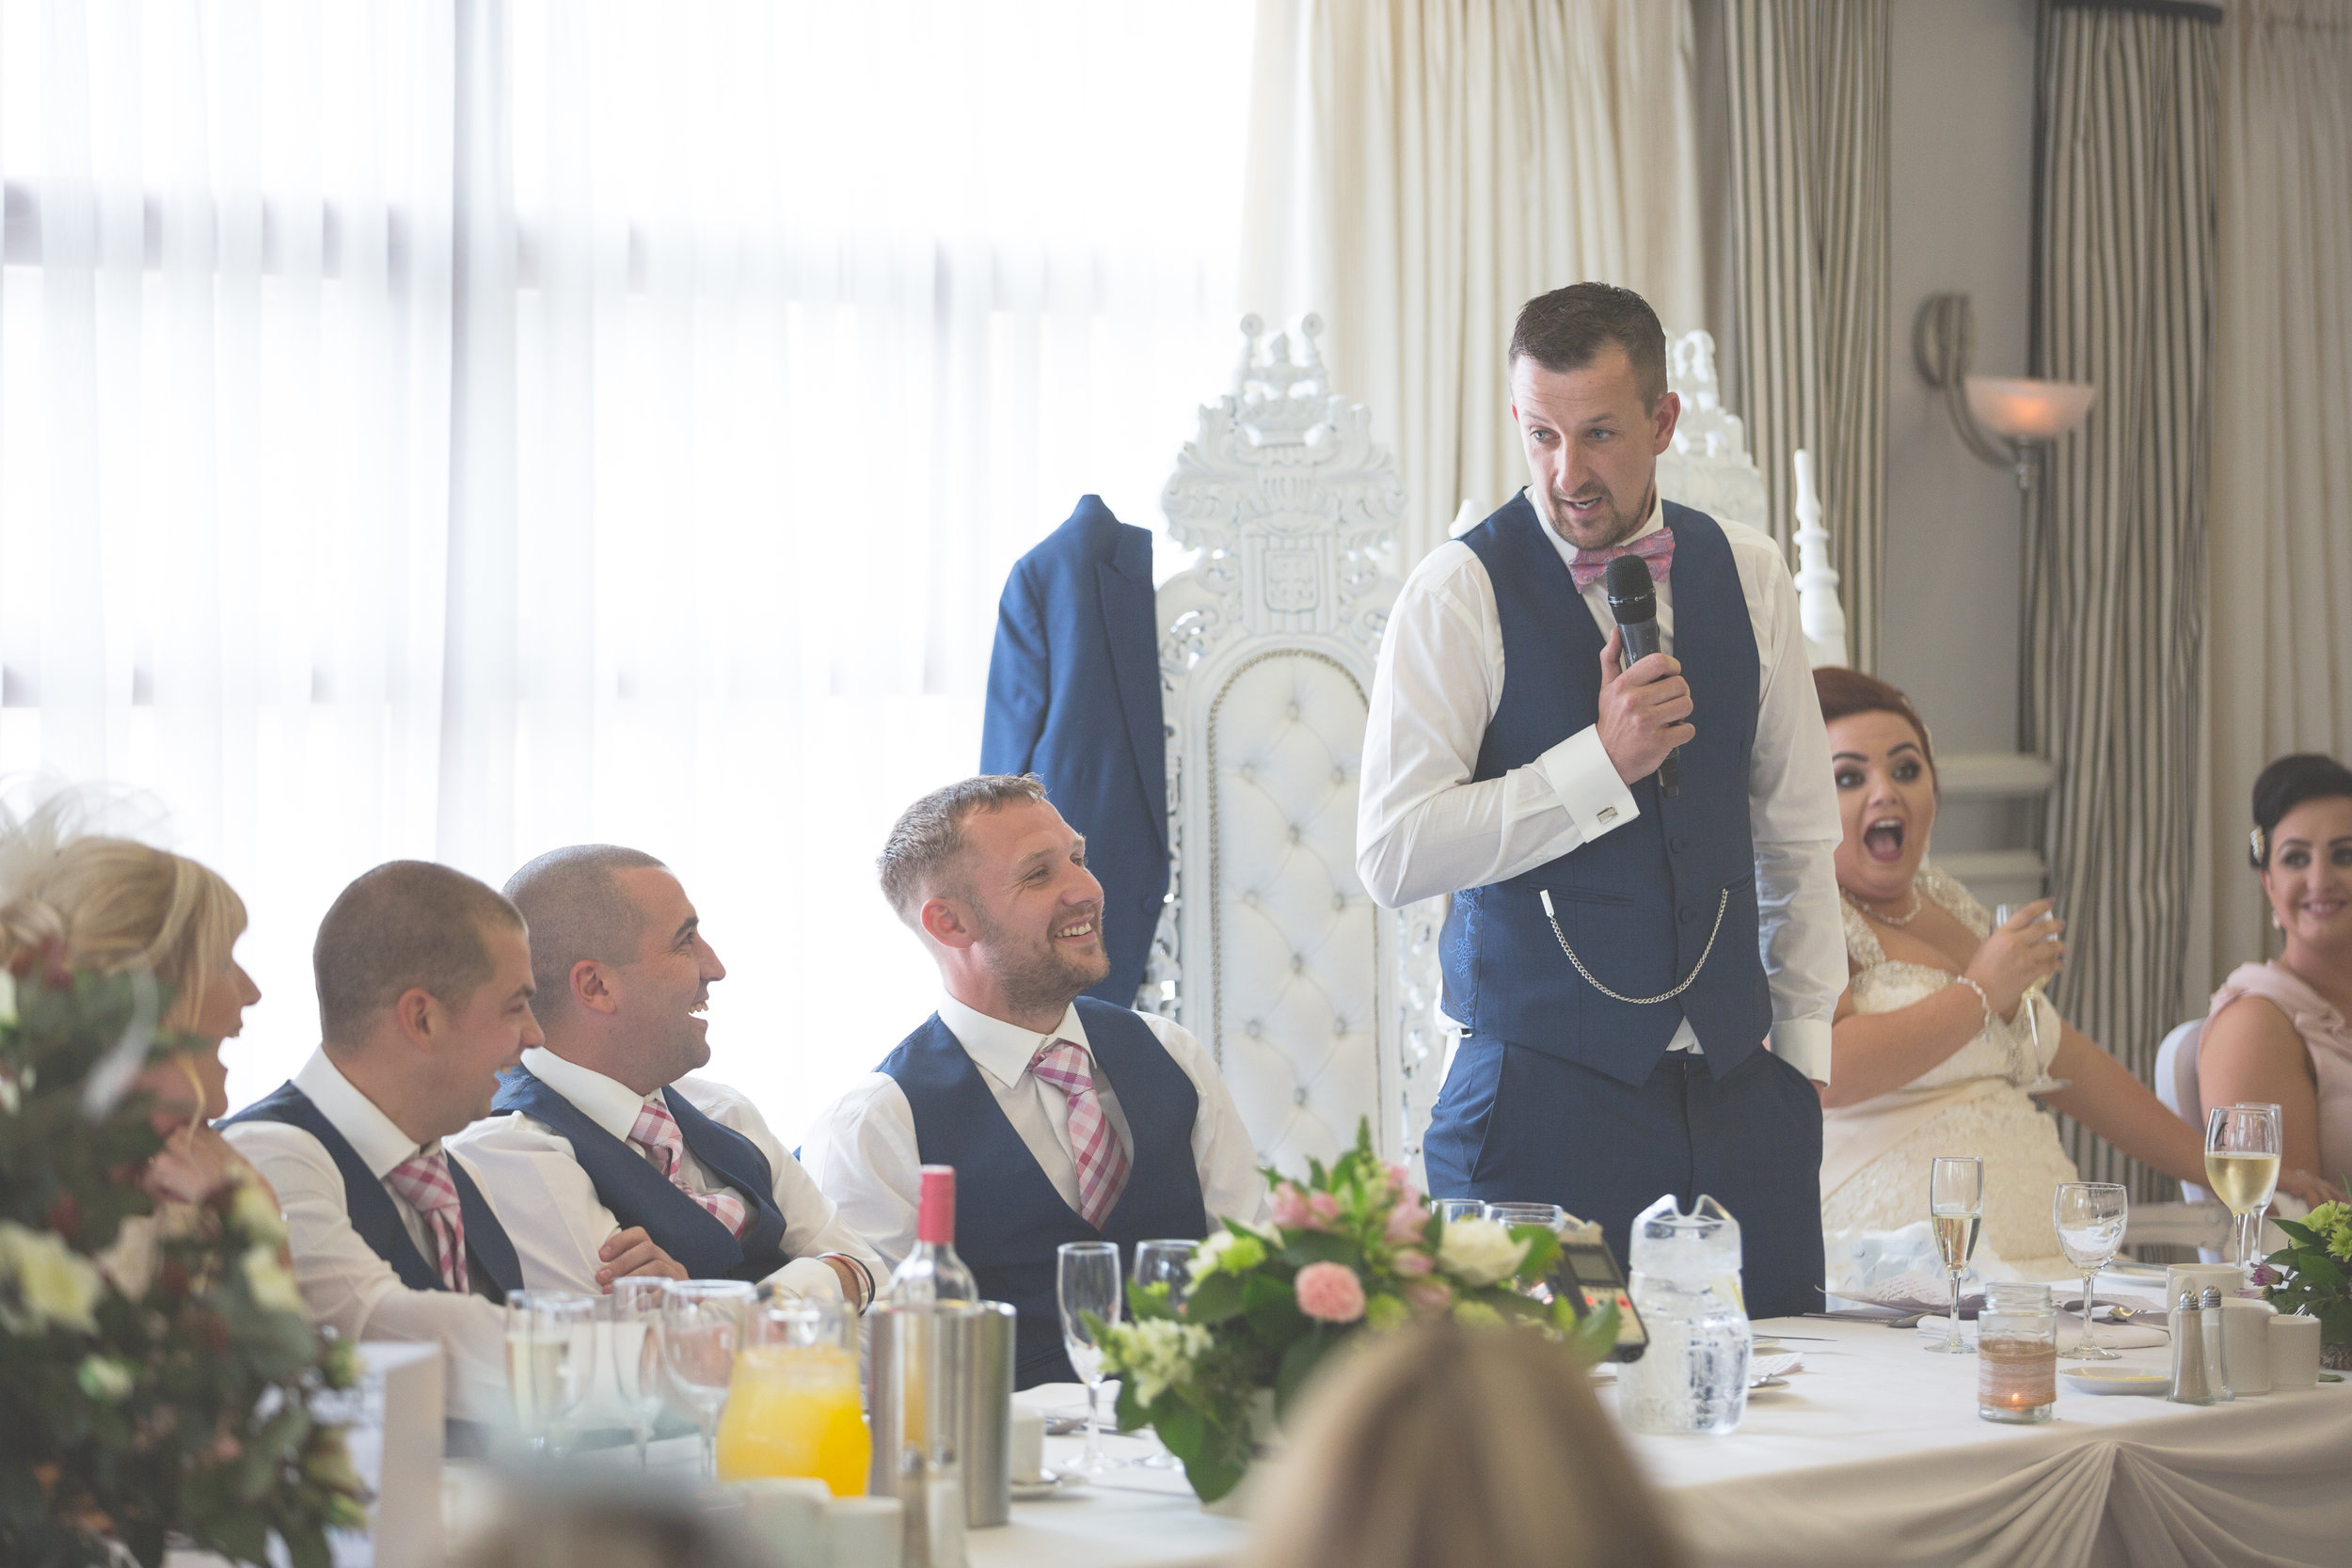 Antoinette & Stephen - Speeches | Brian McEwan Photography | Wedding Photographer Northern Ireland 74.jpg